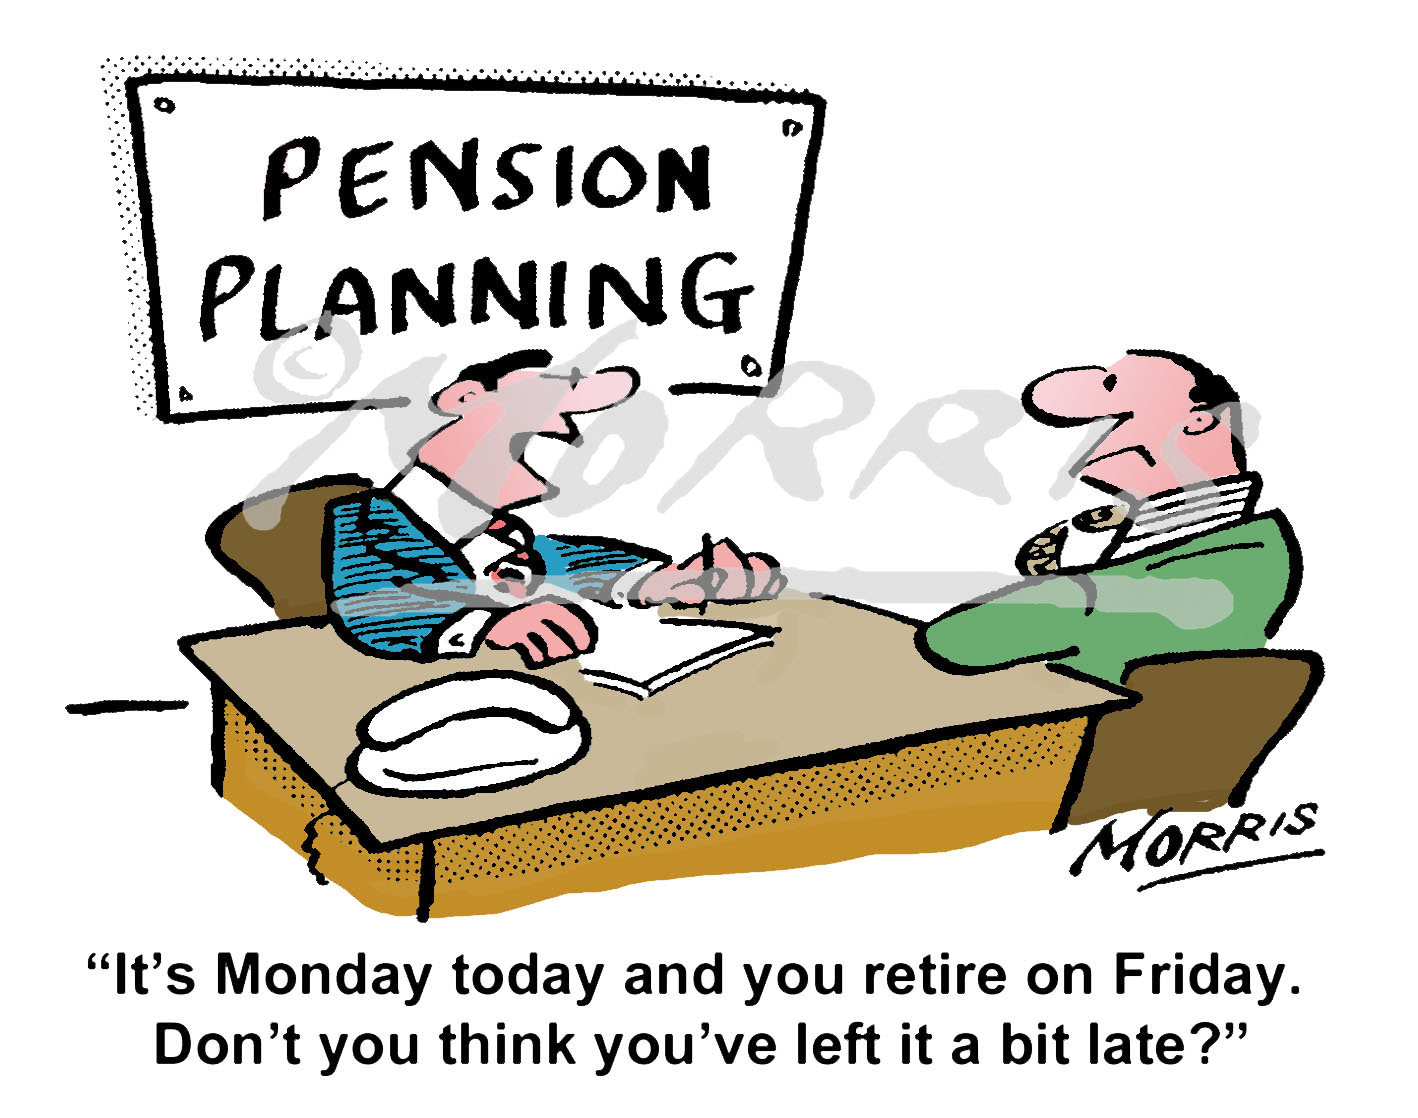 Retirement planning for my parents